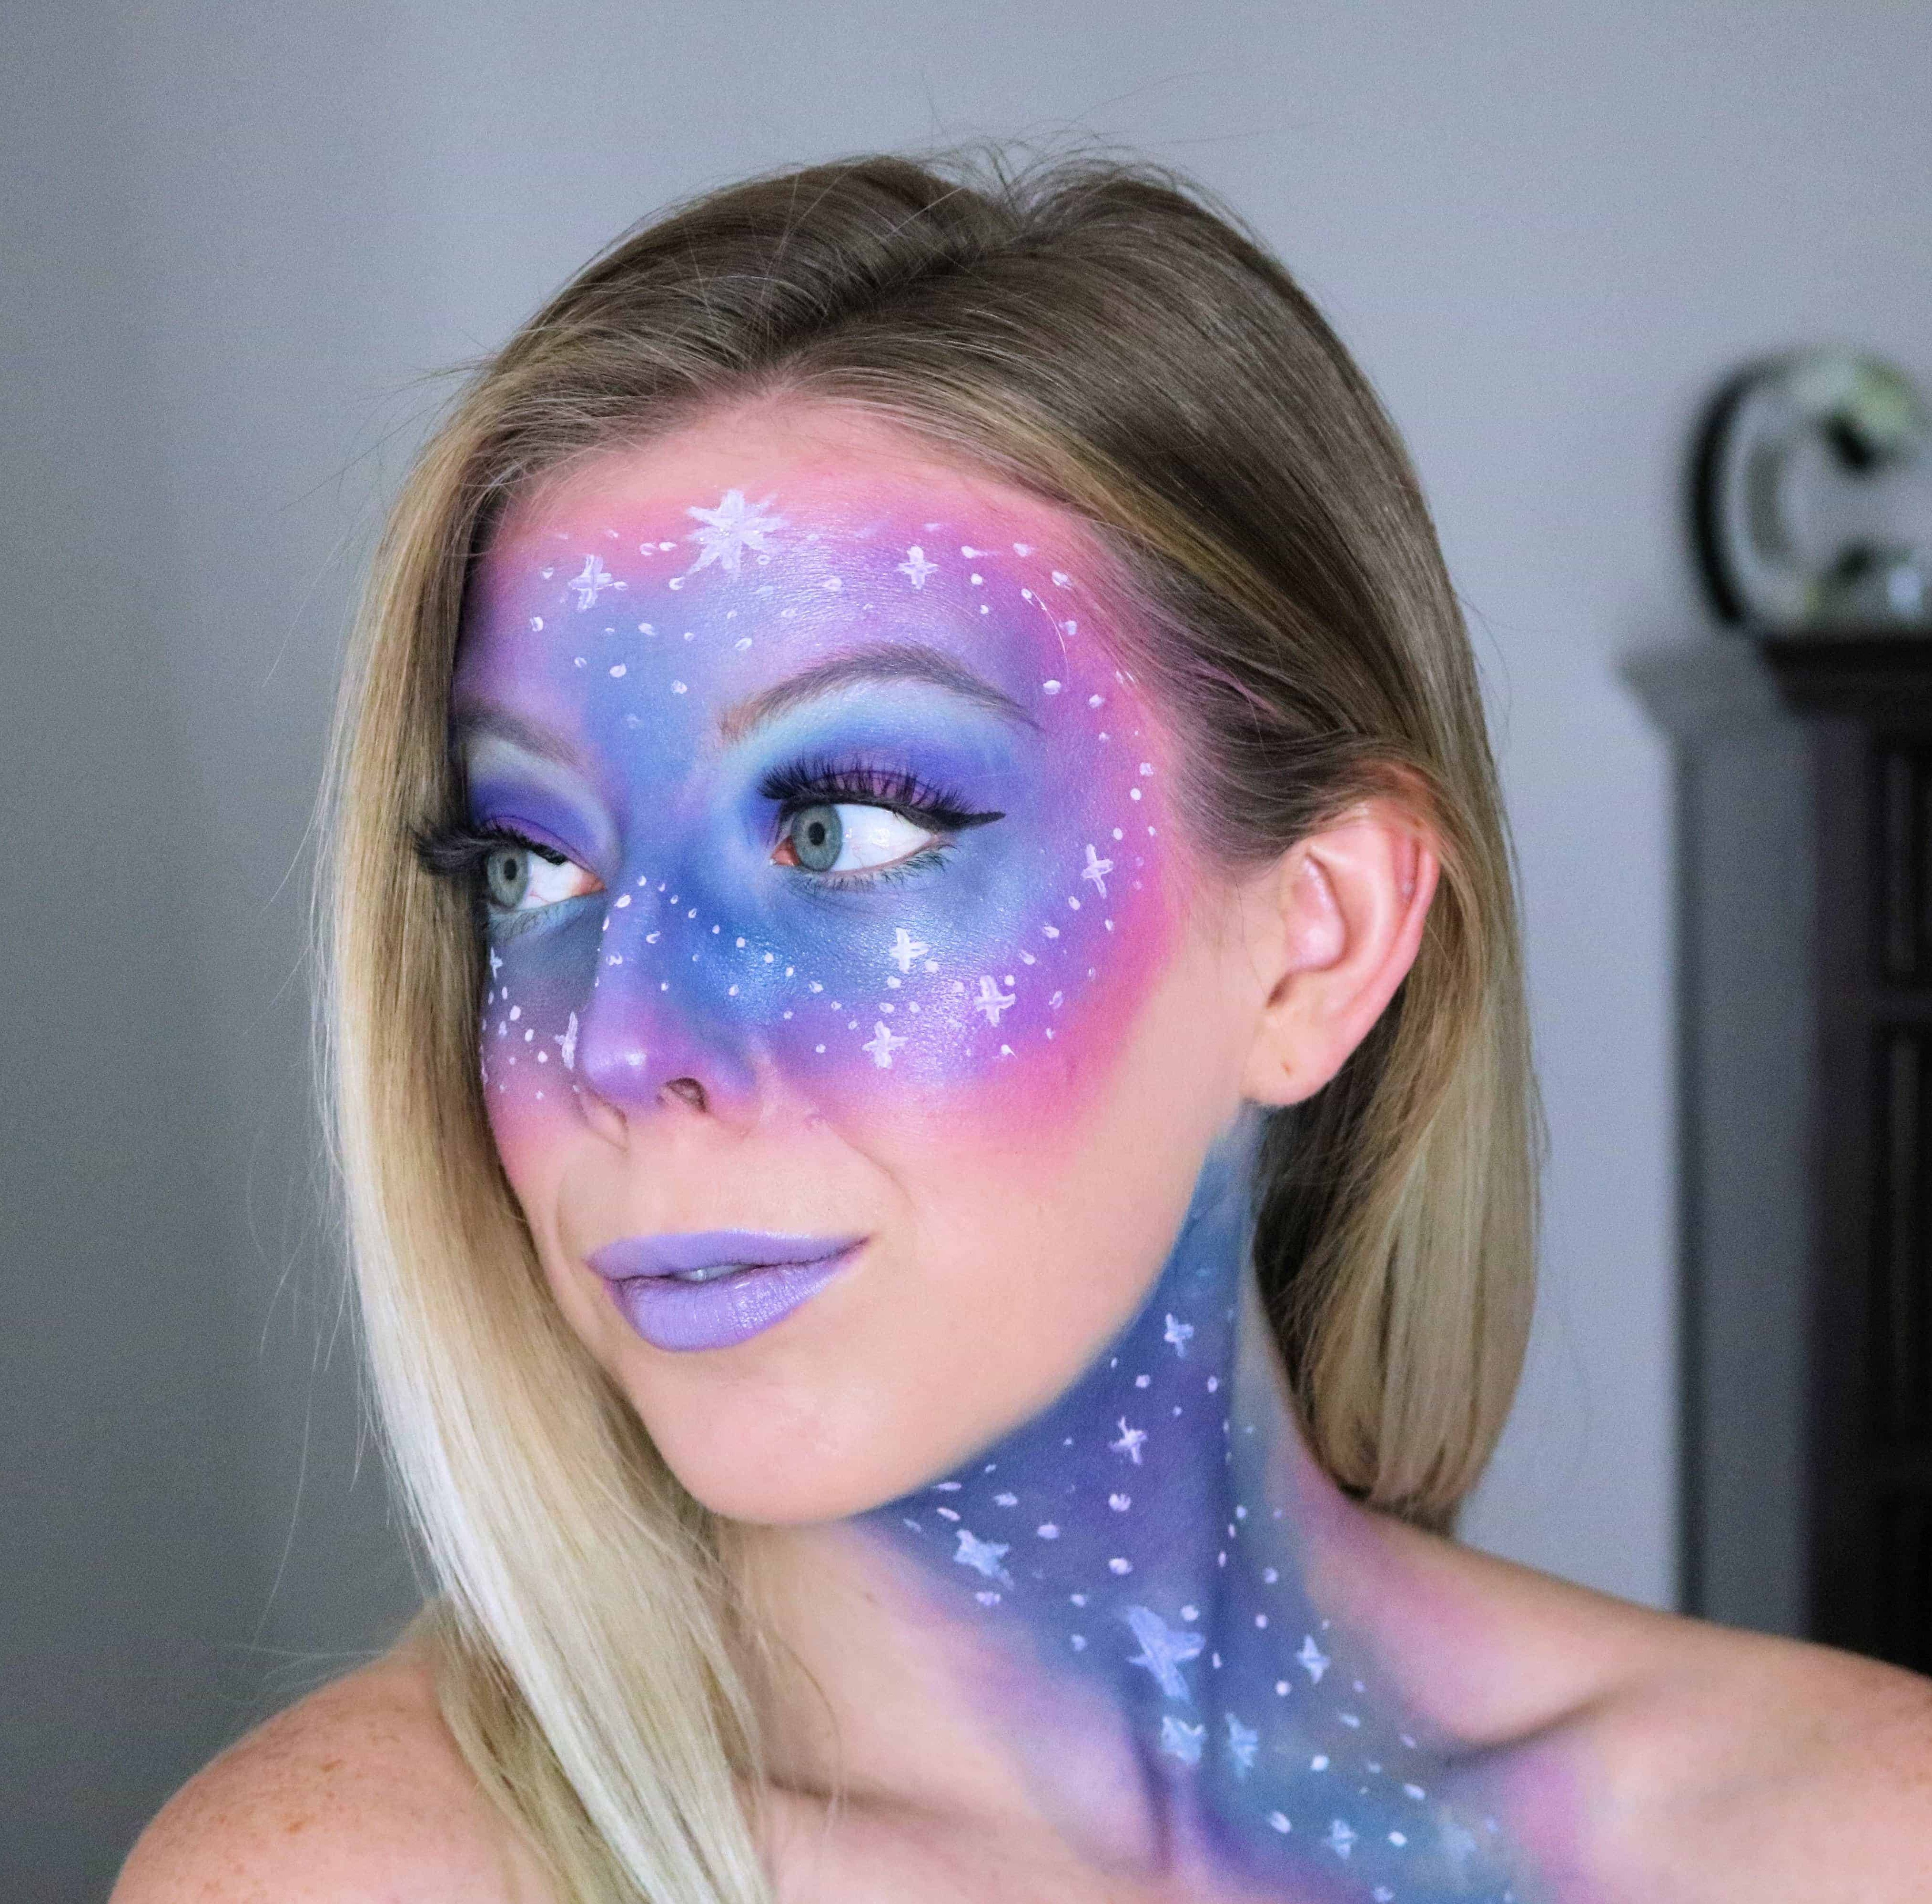 Ready to rock out your inner galaxy space princess for Halloween? Then check out my step-by-step, easy galaxy makeup tutorial with pink, purple, and blue colors and stars! This futuristic, alien, outer space look is so cute and the perfect fun Halloween costume! #galaxymakeup #halloweenmakeup #halloween #makeuptutorial